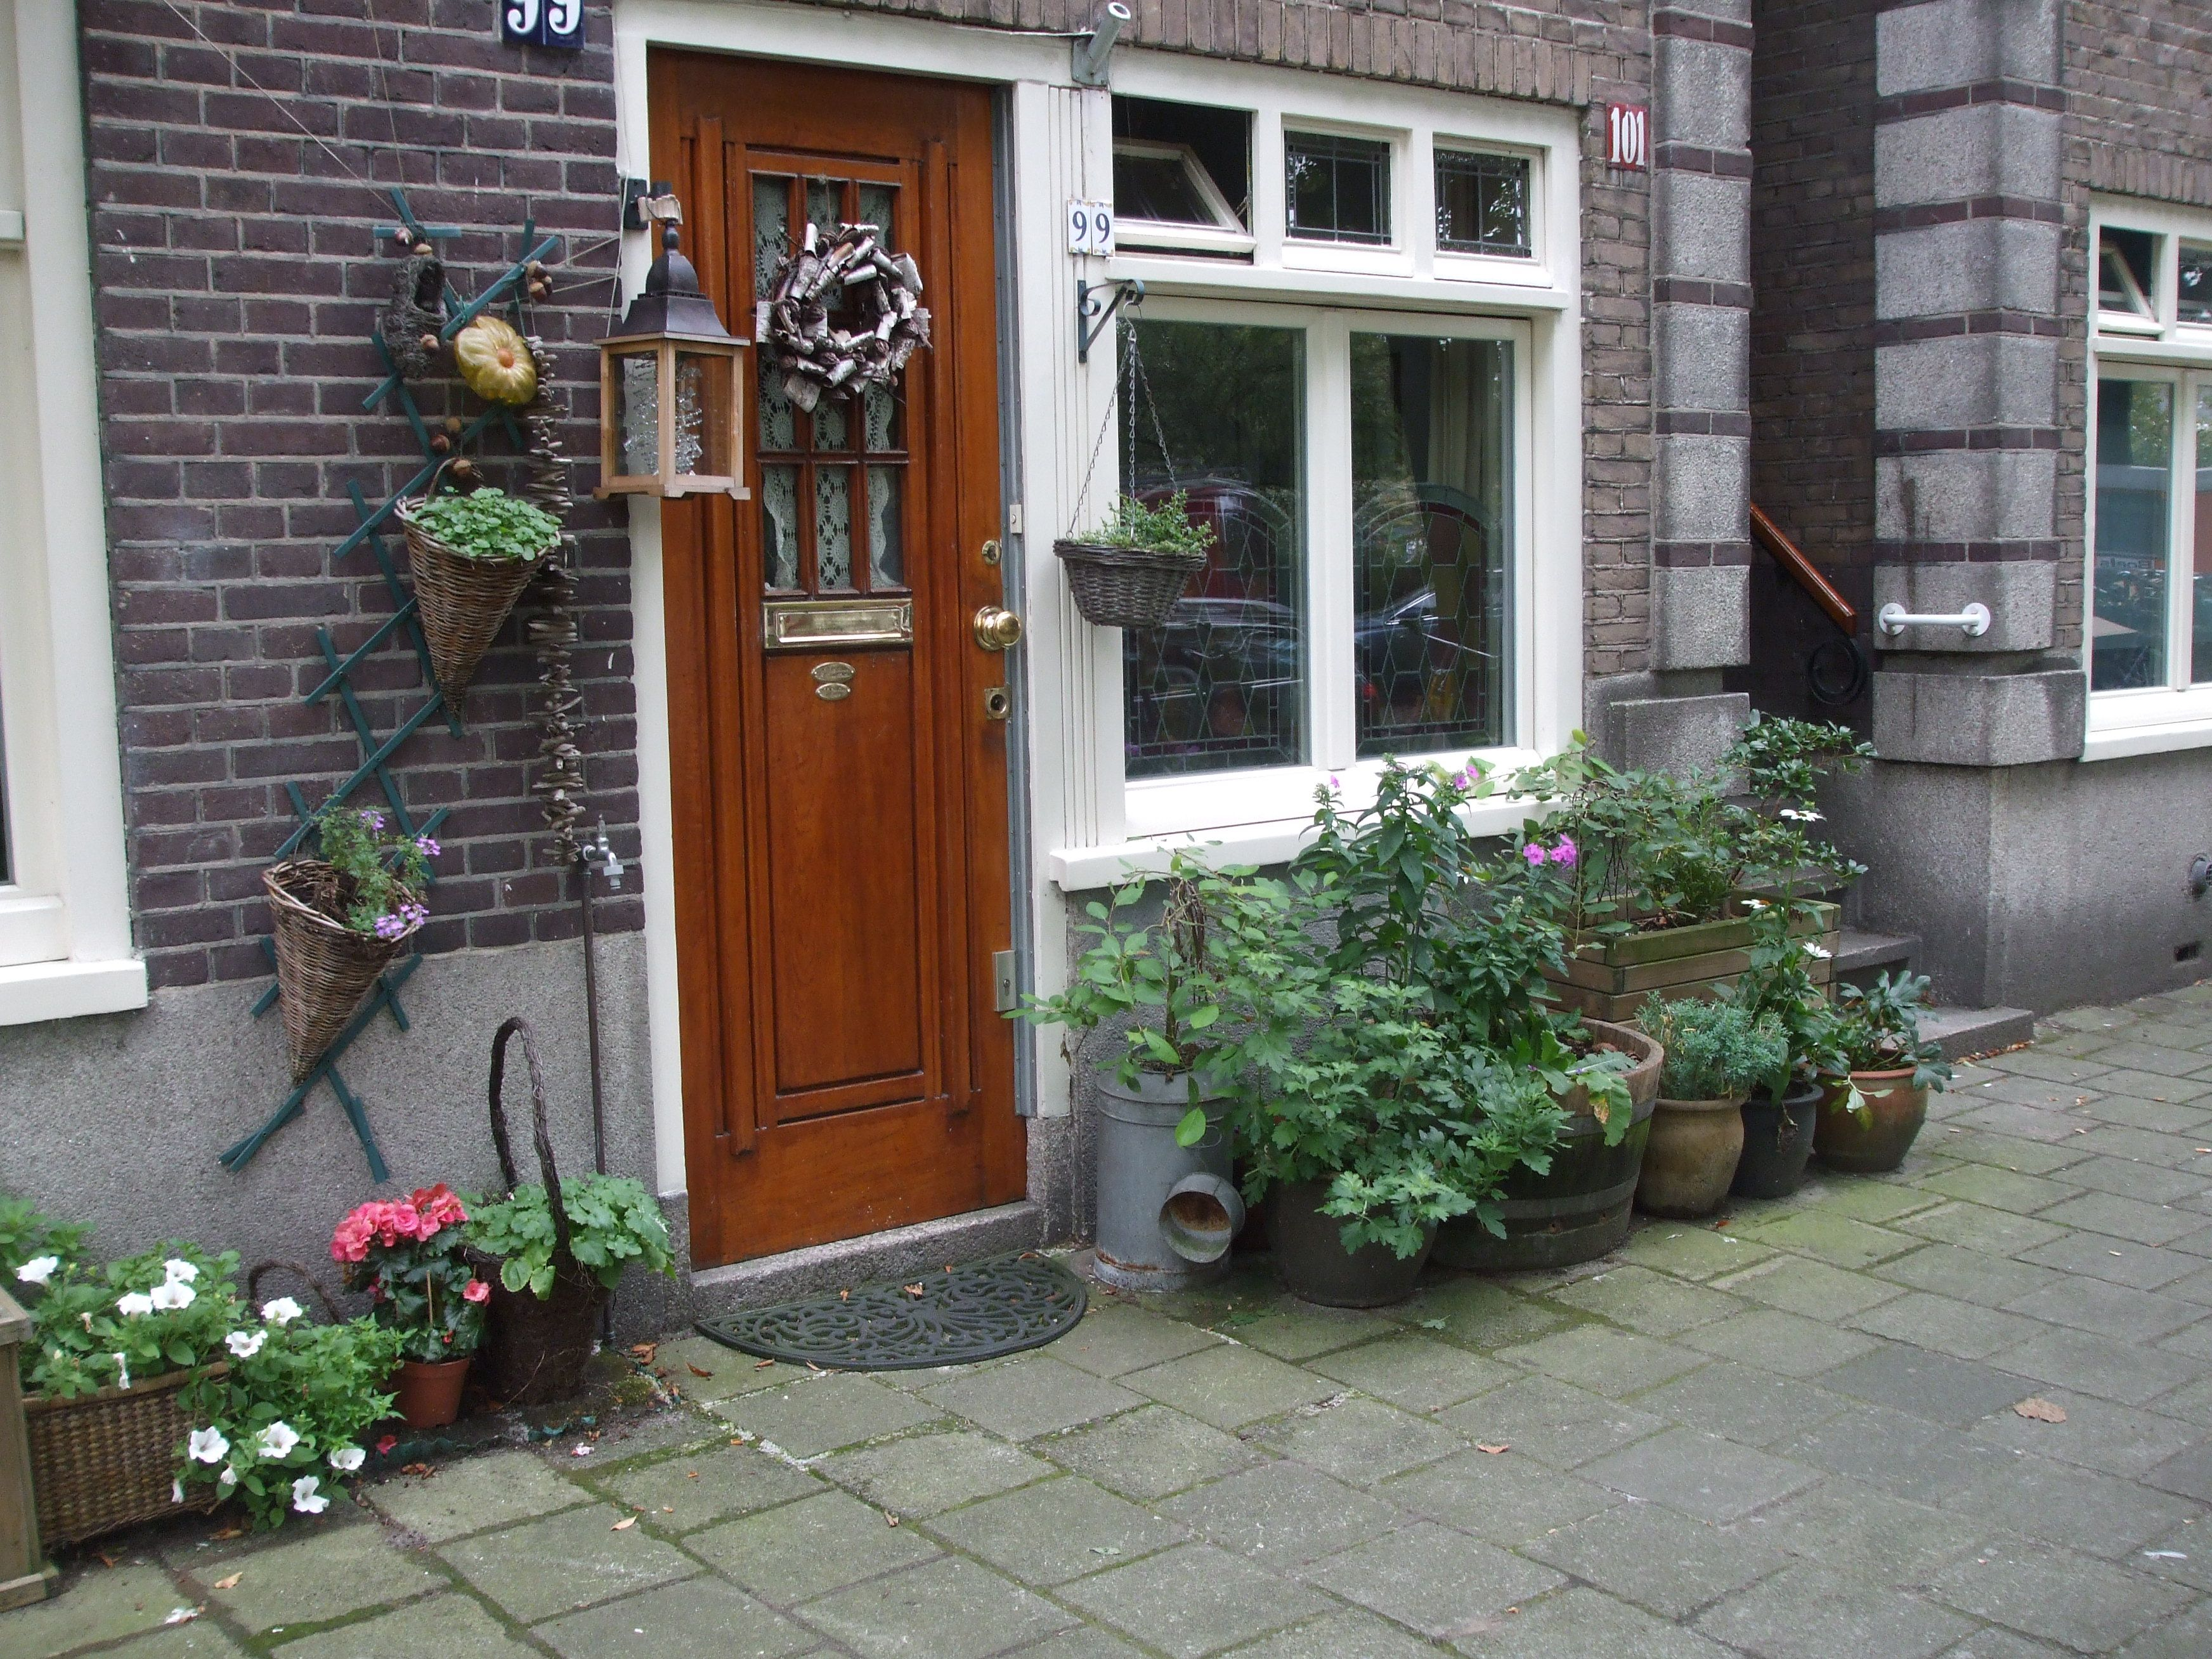 In Front Of A House Plants And Flowers In Pots In The